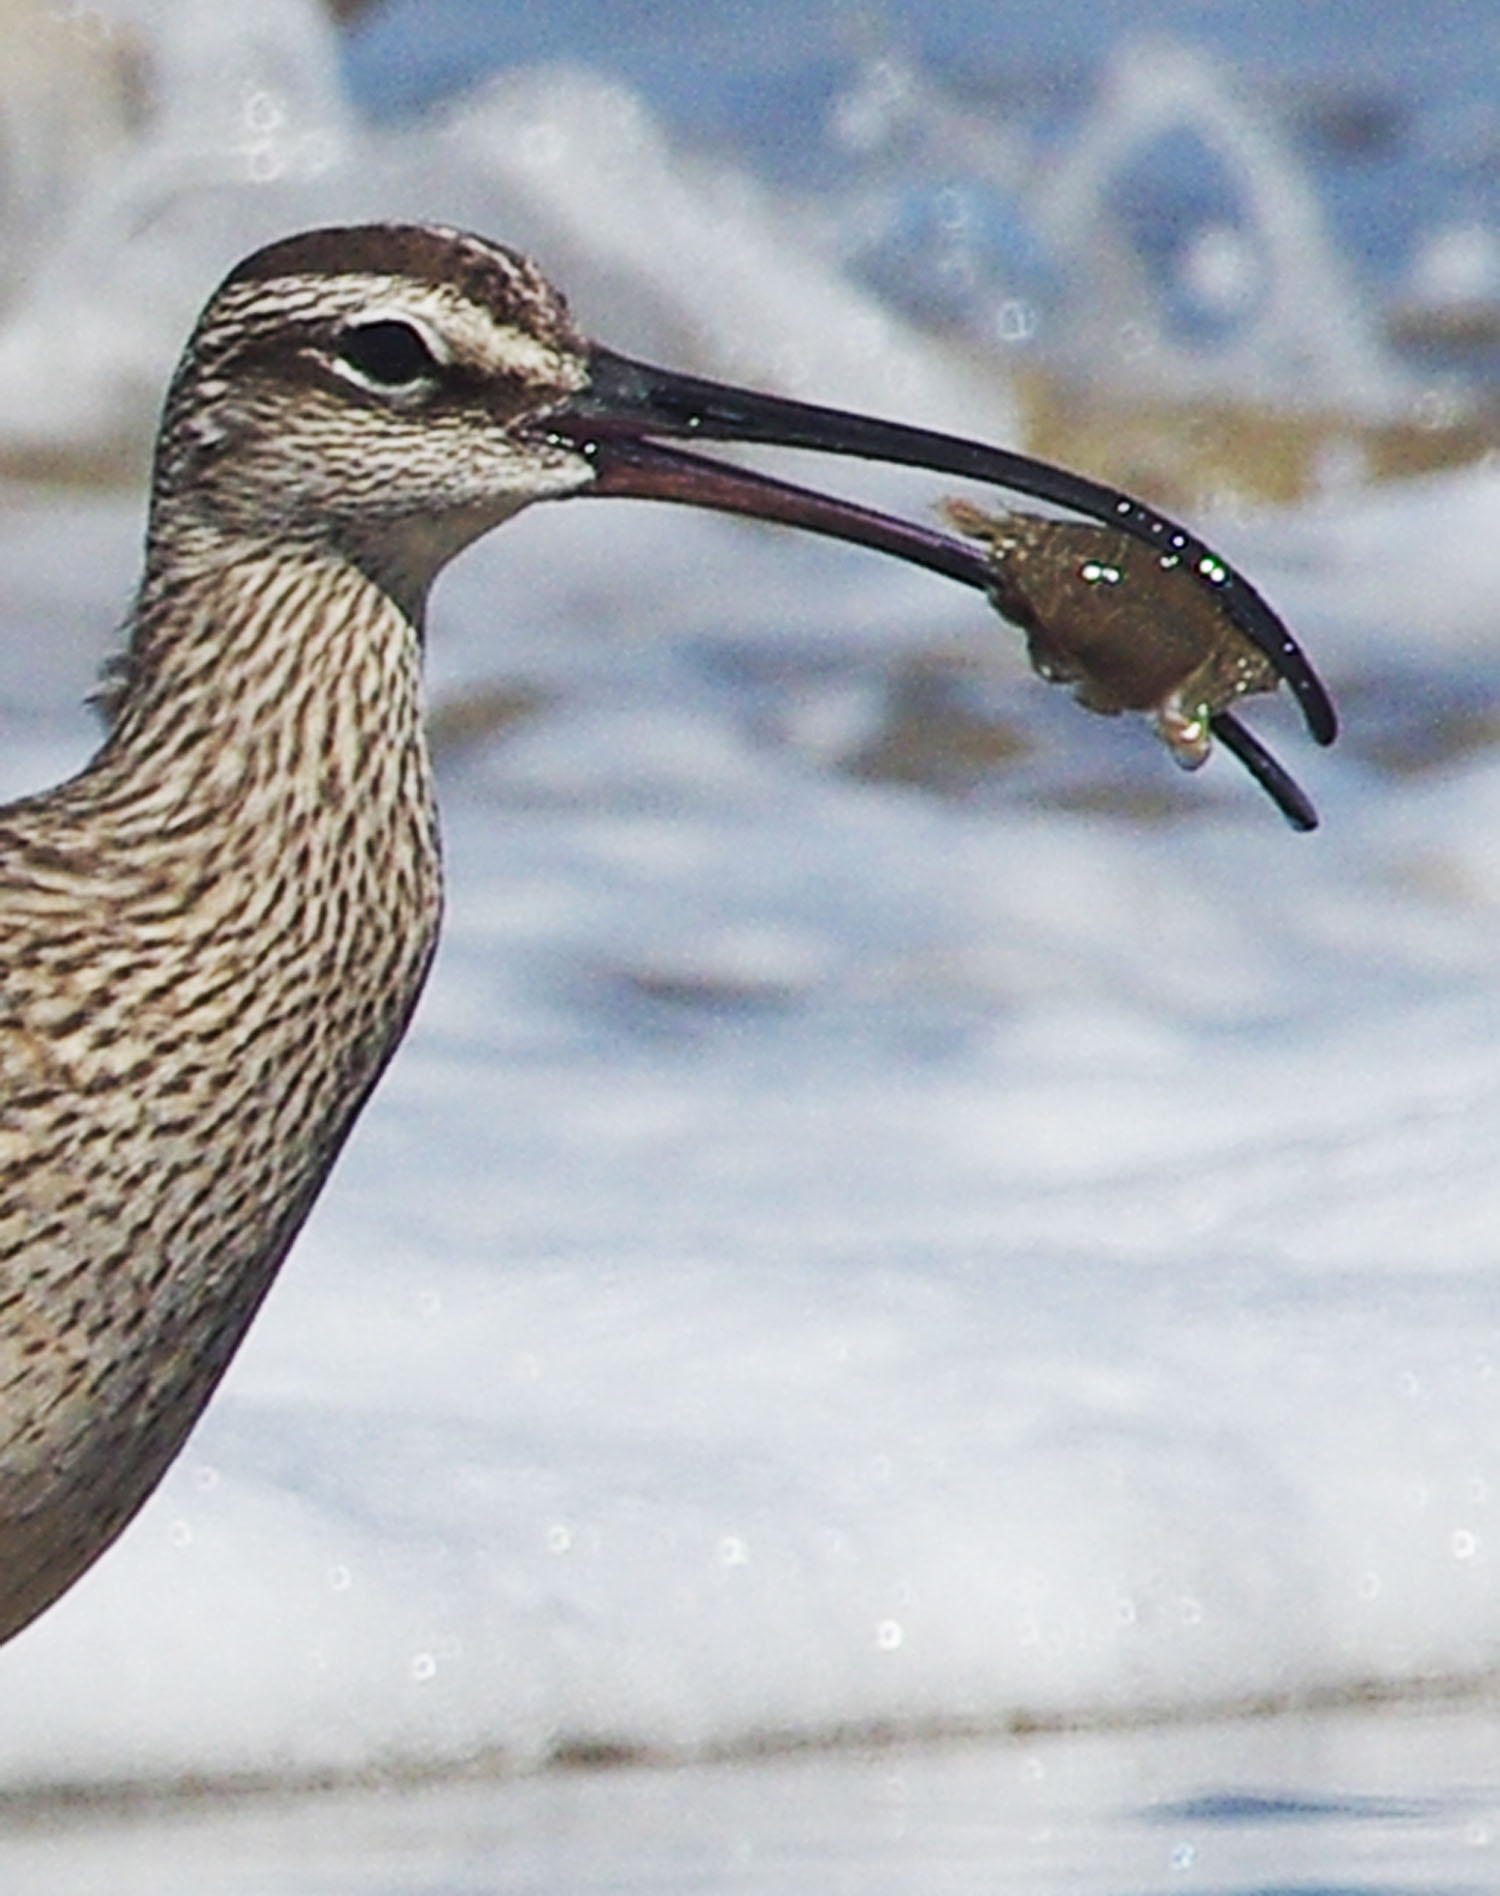 Long-billed bird holds a crab in its beak